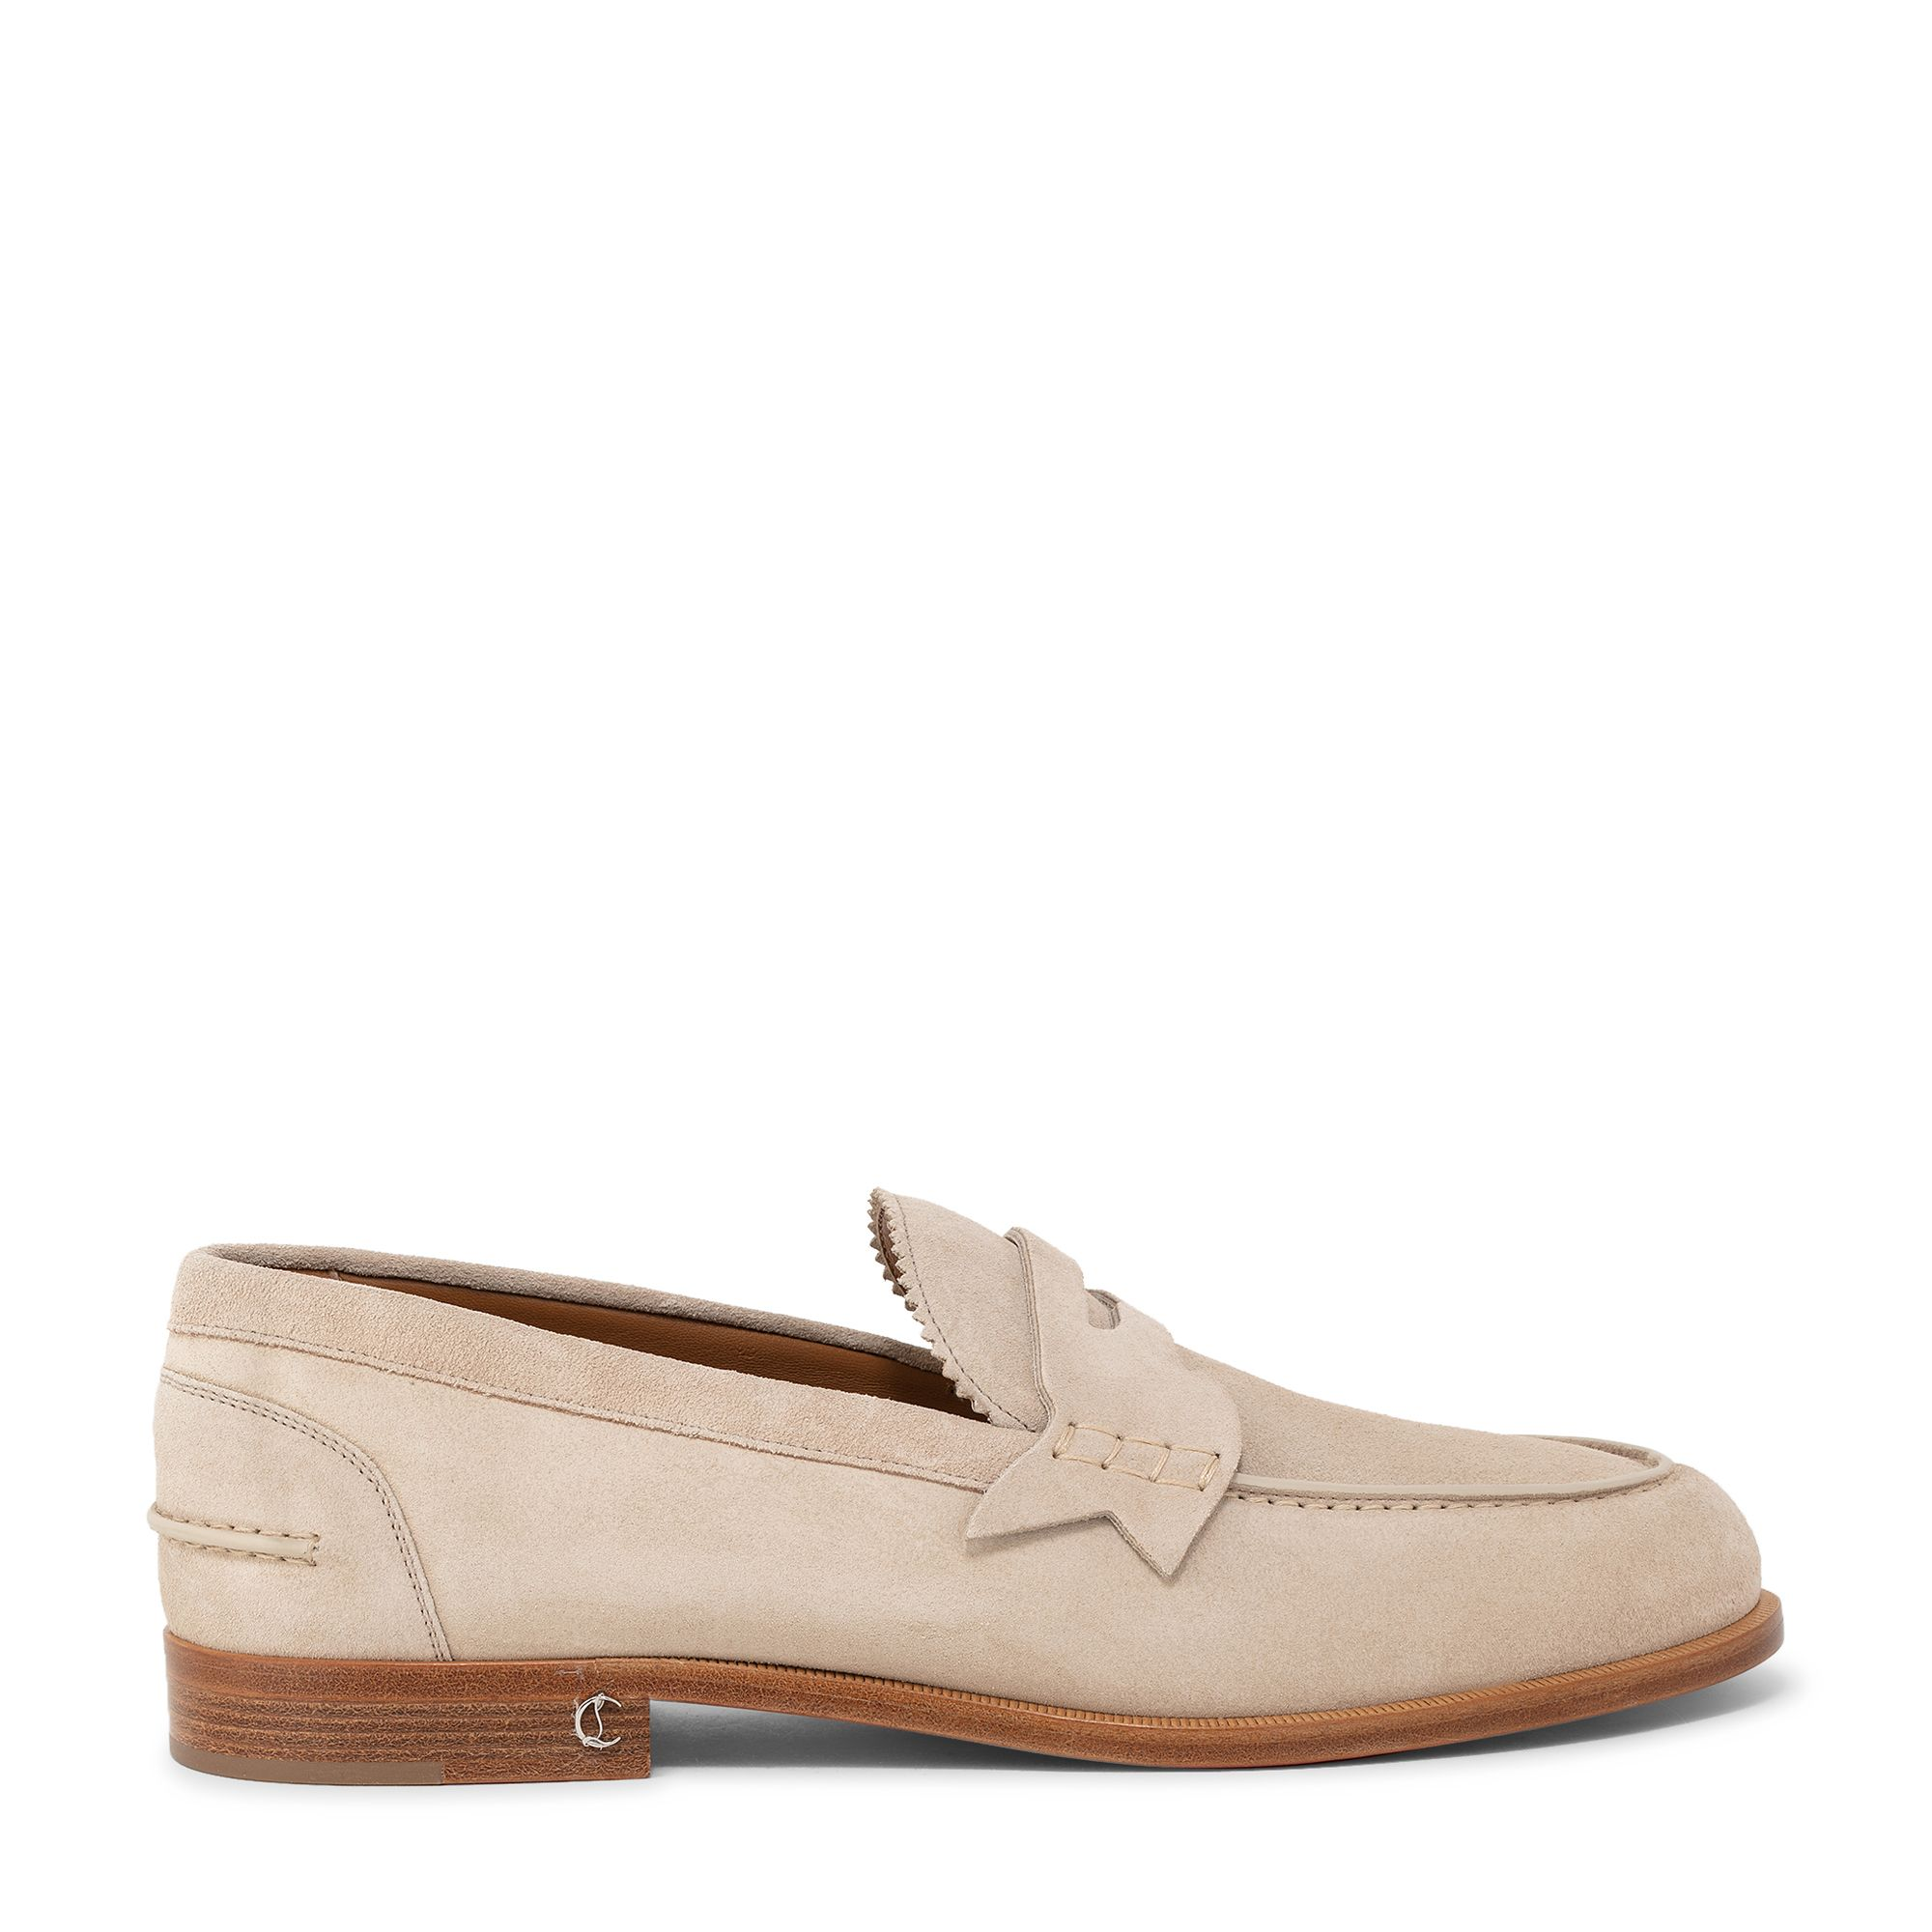 No Penny Flat moccasin loafers